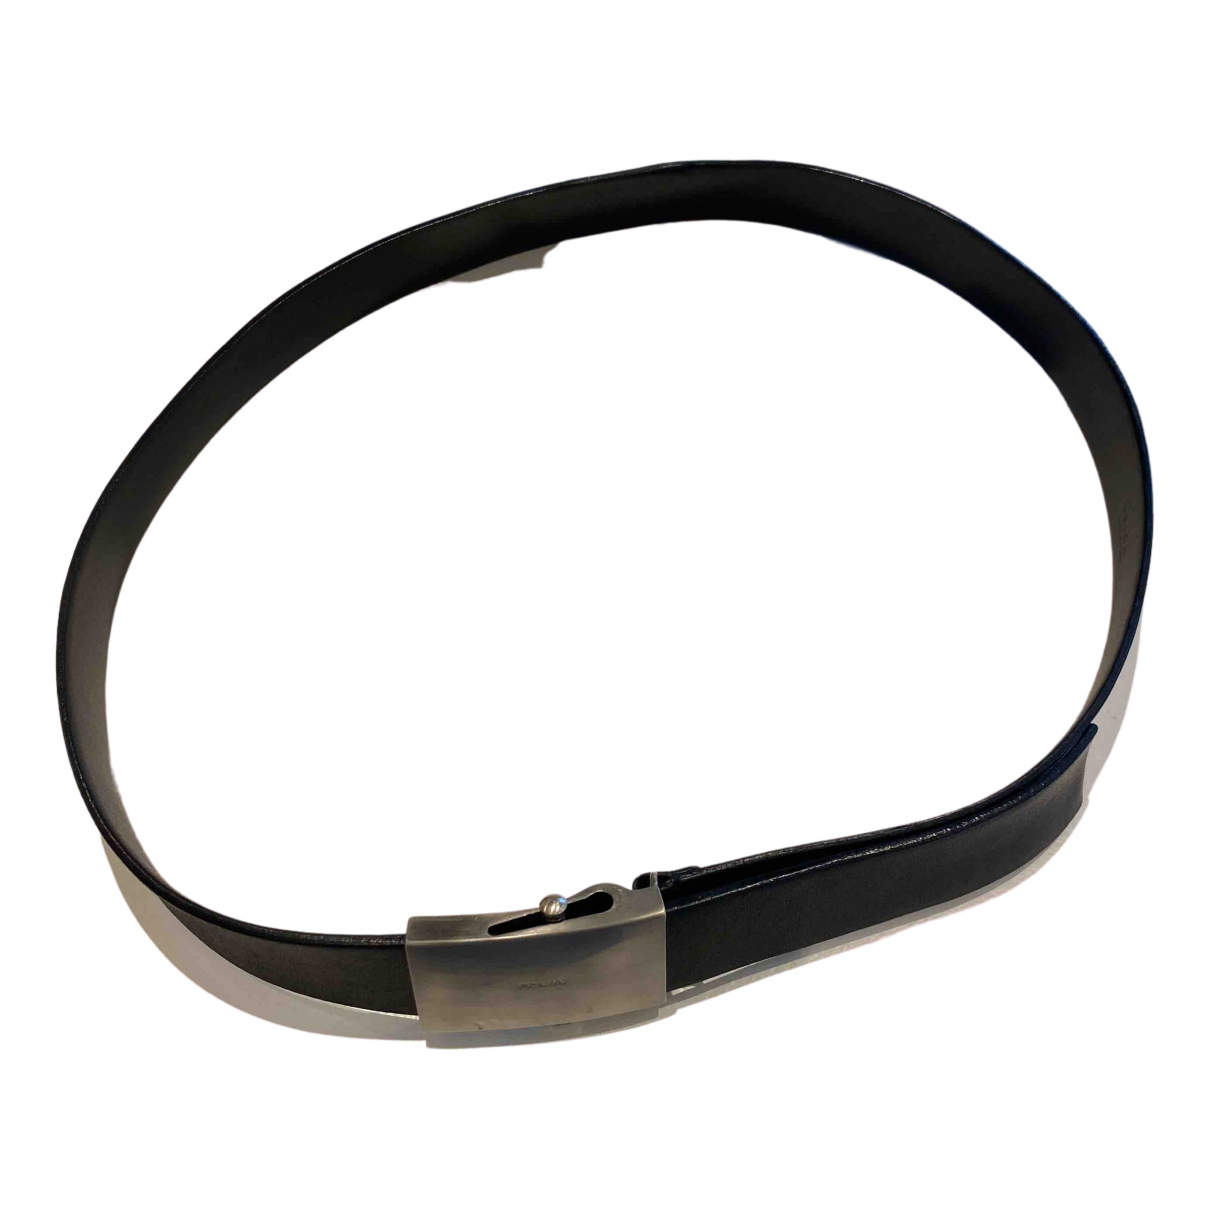 Prada N Black Leather belt for Men 100 cm